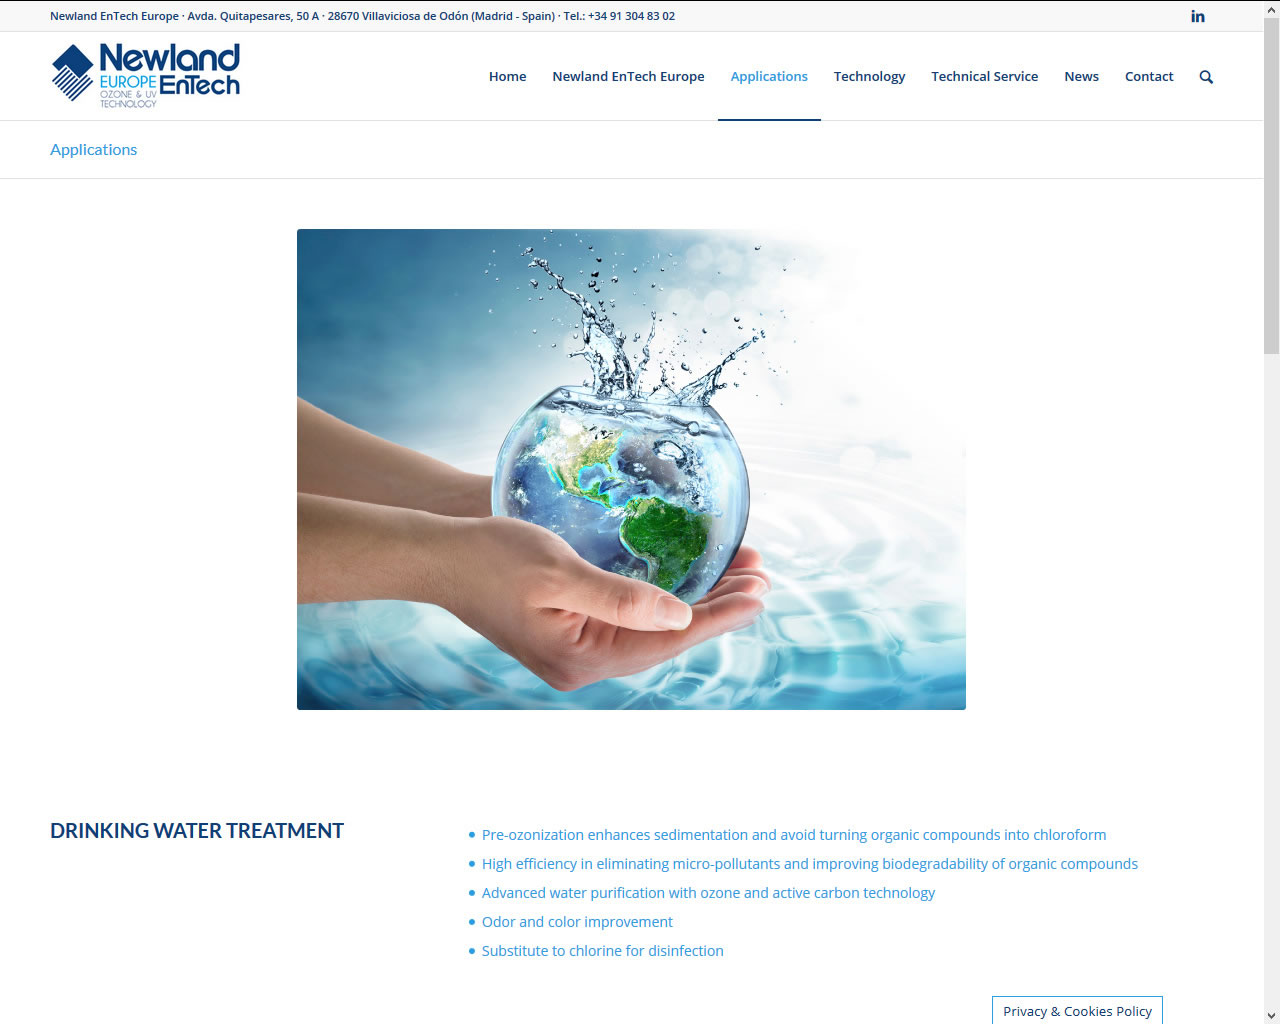 Proyectos - Newland EnTech Europe